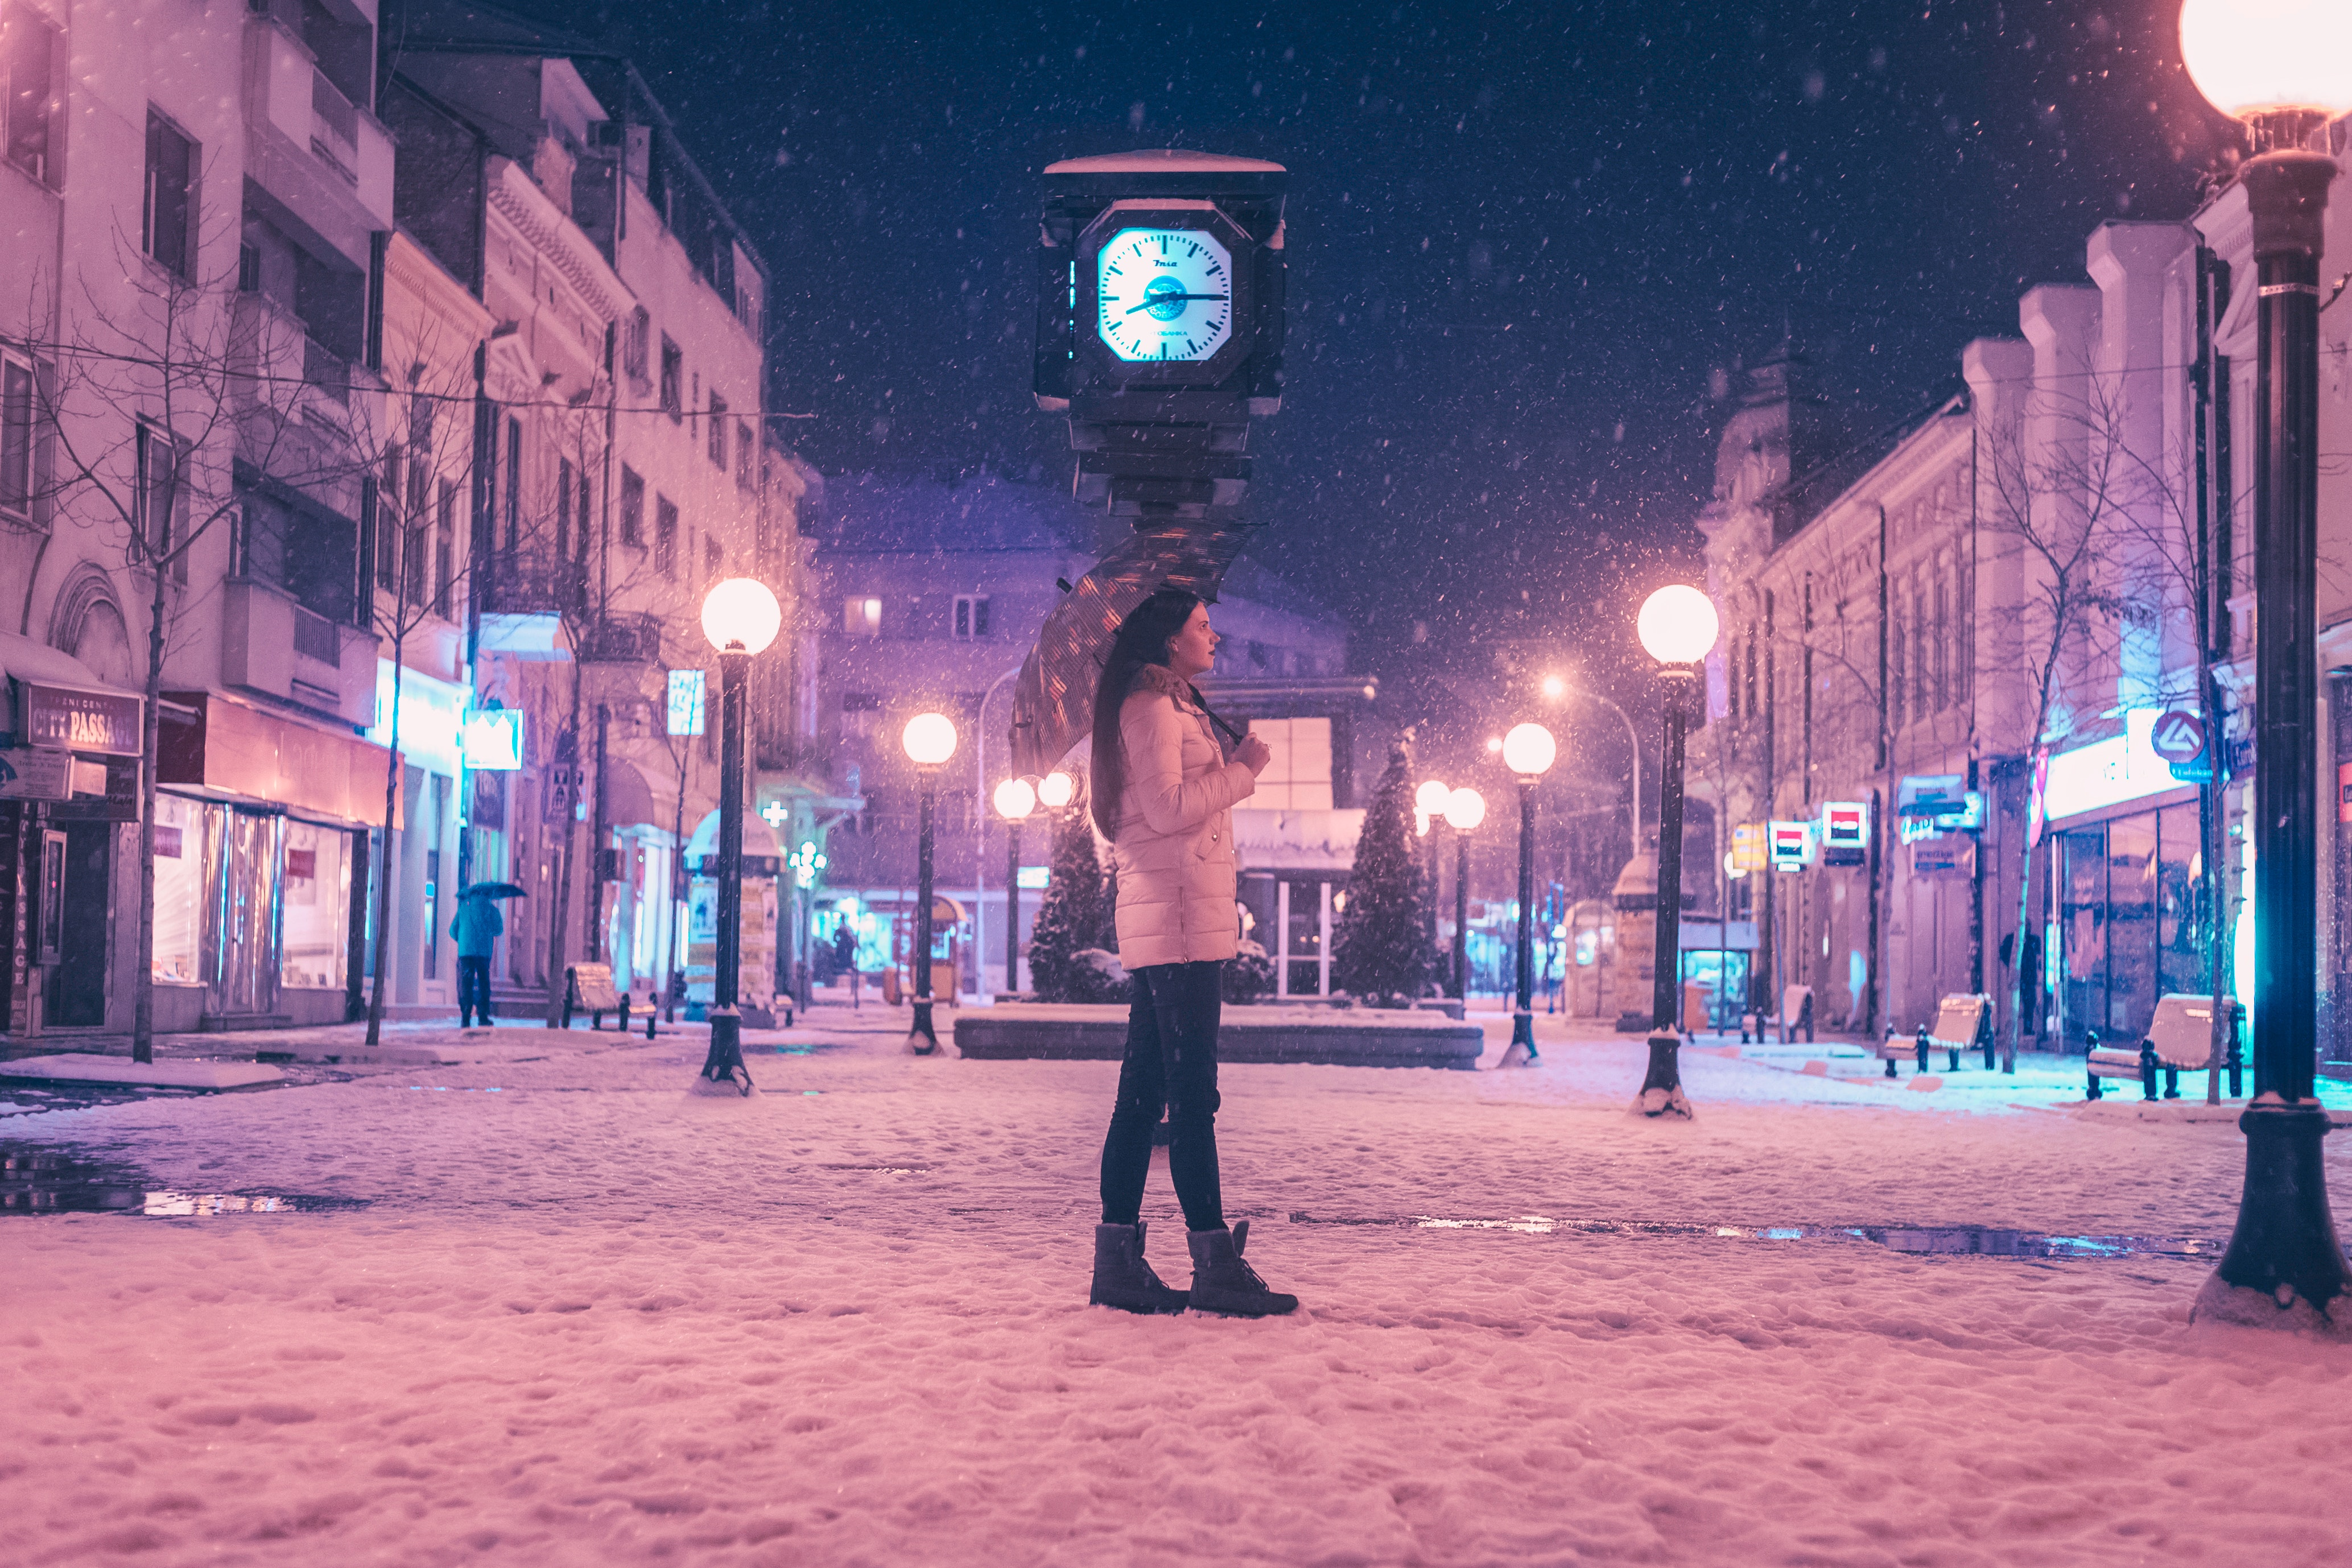 Woman Walking on Street Near Light Post during Winter Season, Architecture, Road, Urban, Umbrella, HQ Photo